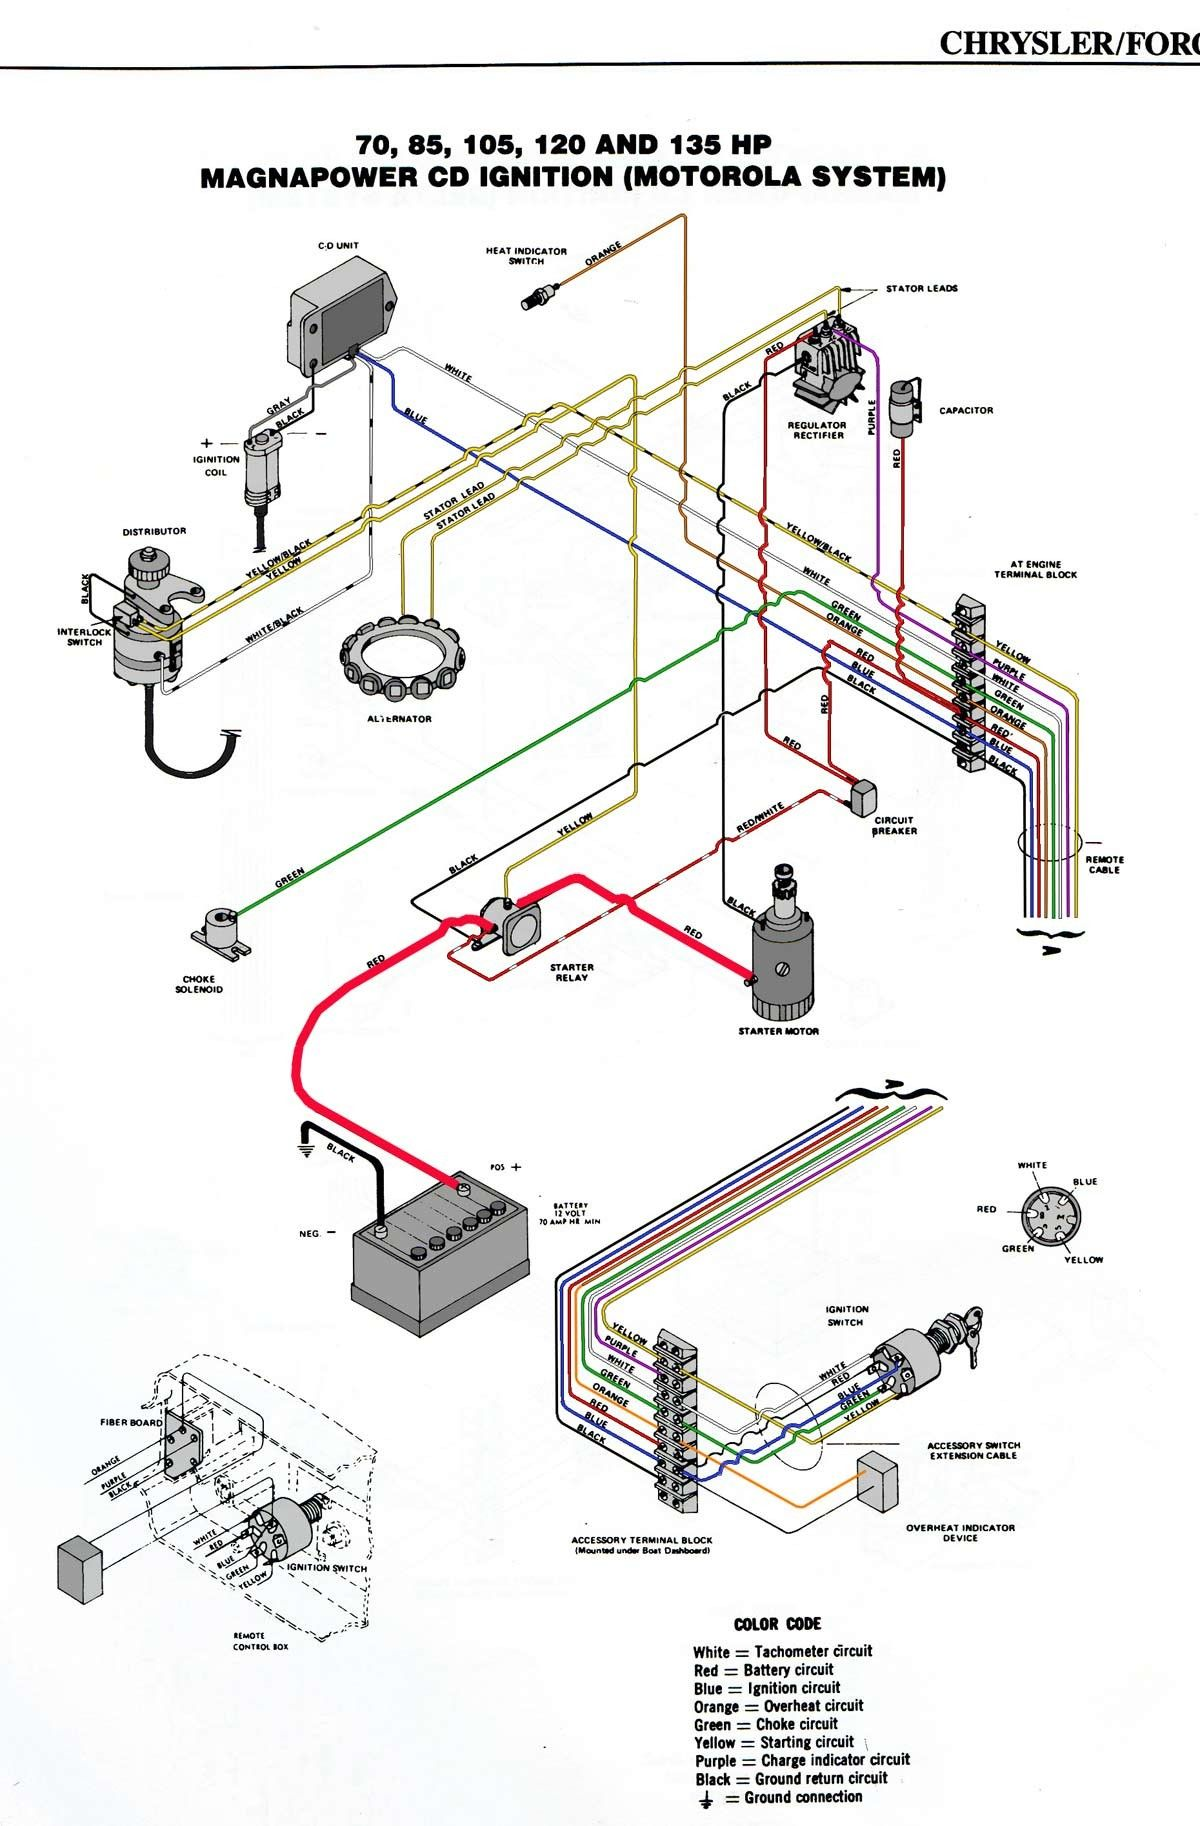 Ignition Key Wiring For 125hp 1996 Mercury In 2021 Diagram Wire Electrical Wiring Diagram